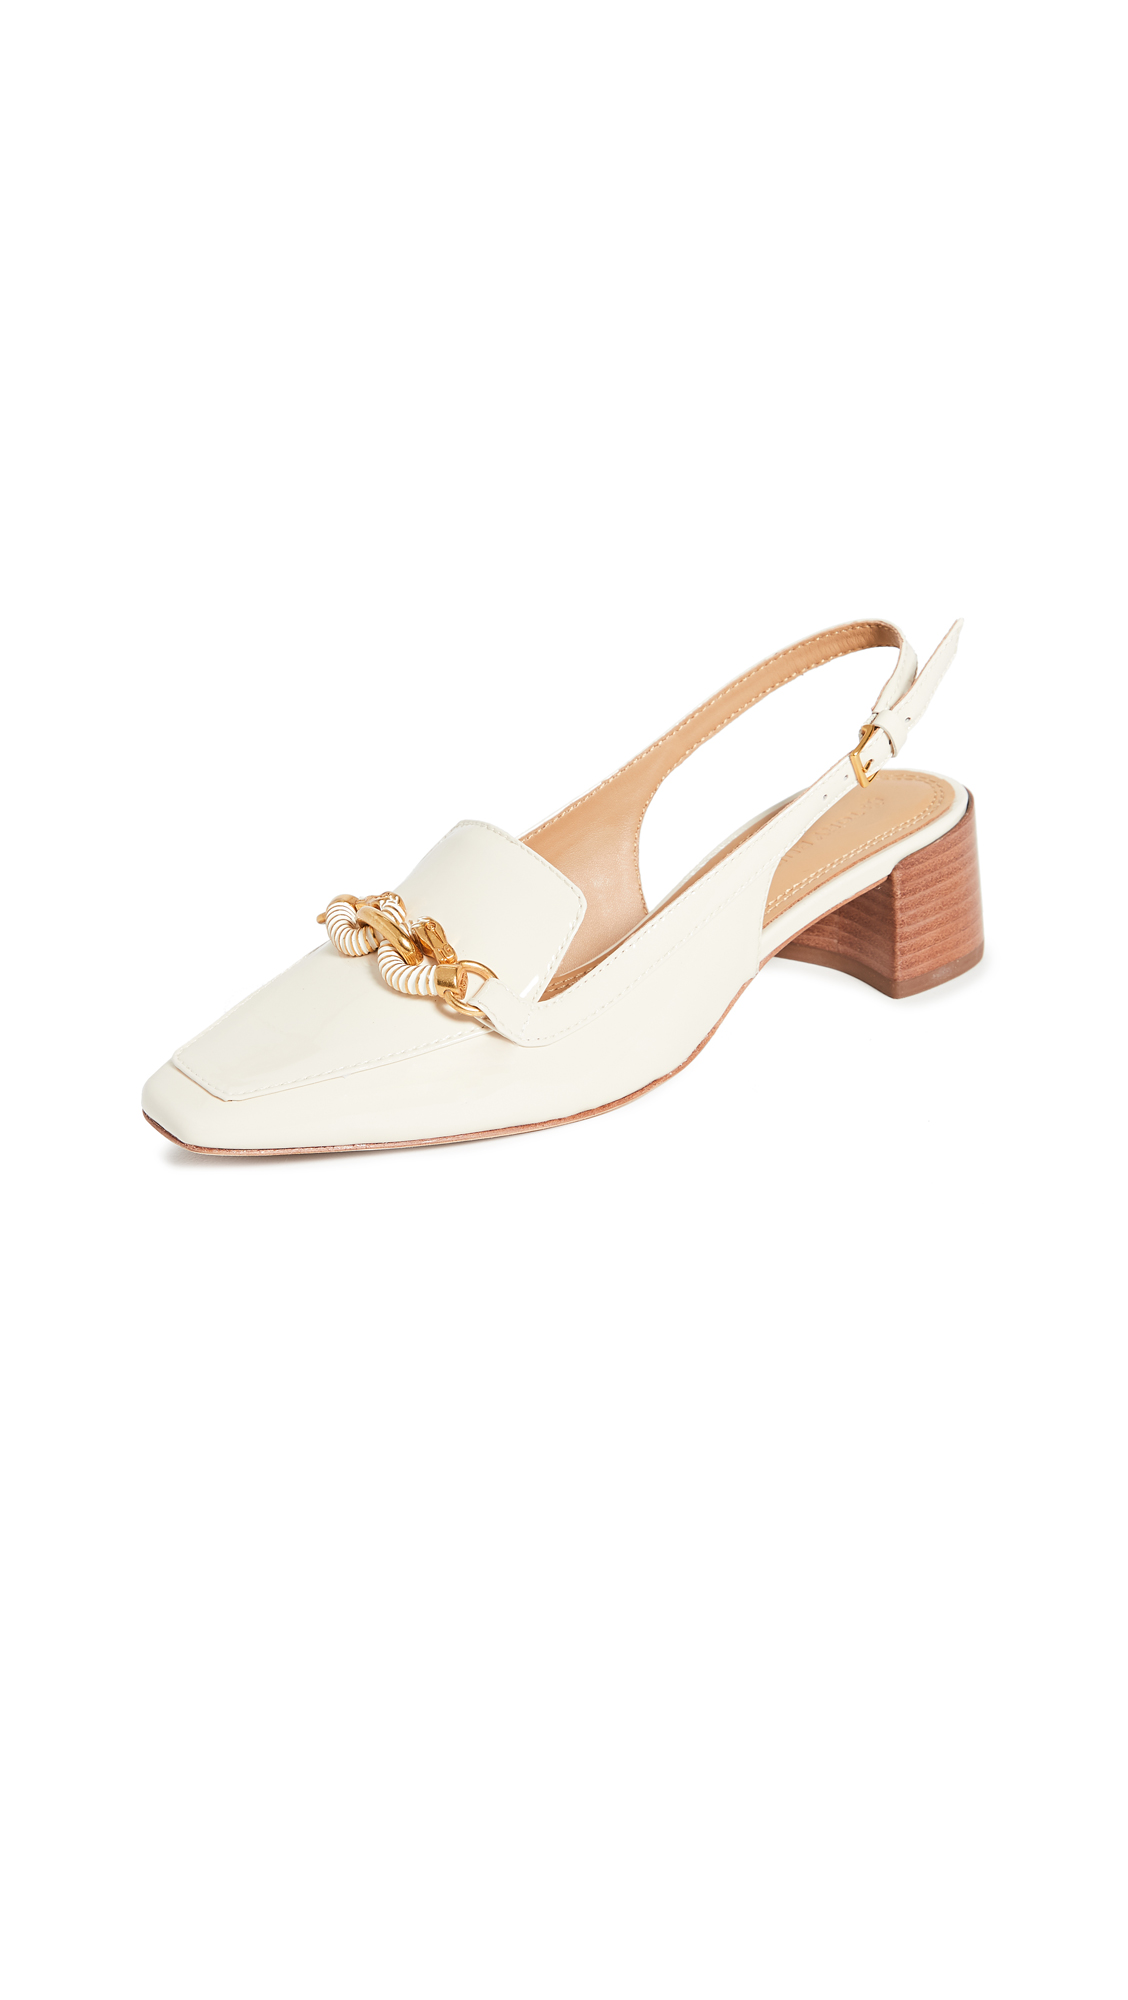 Tory Burch Jessa Slingback Pumps 45mm – 50% Off Sale